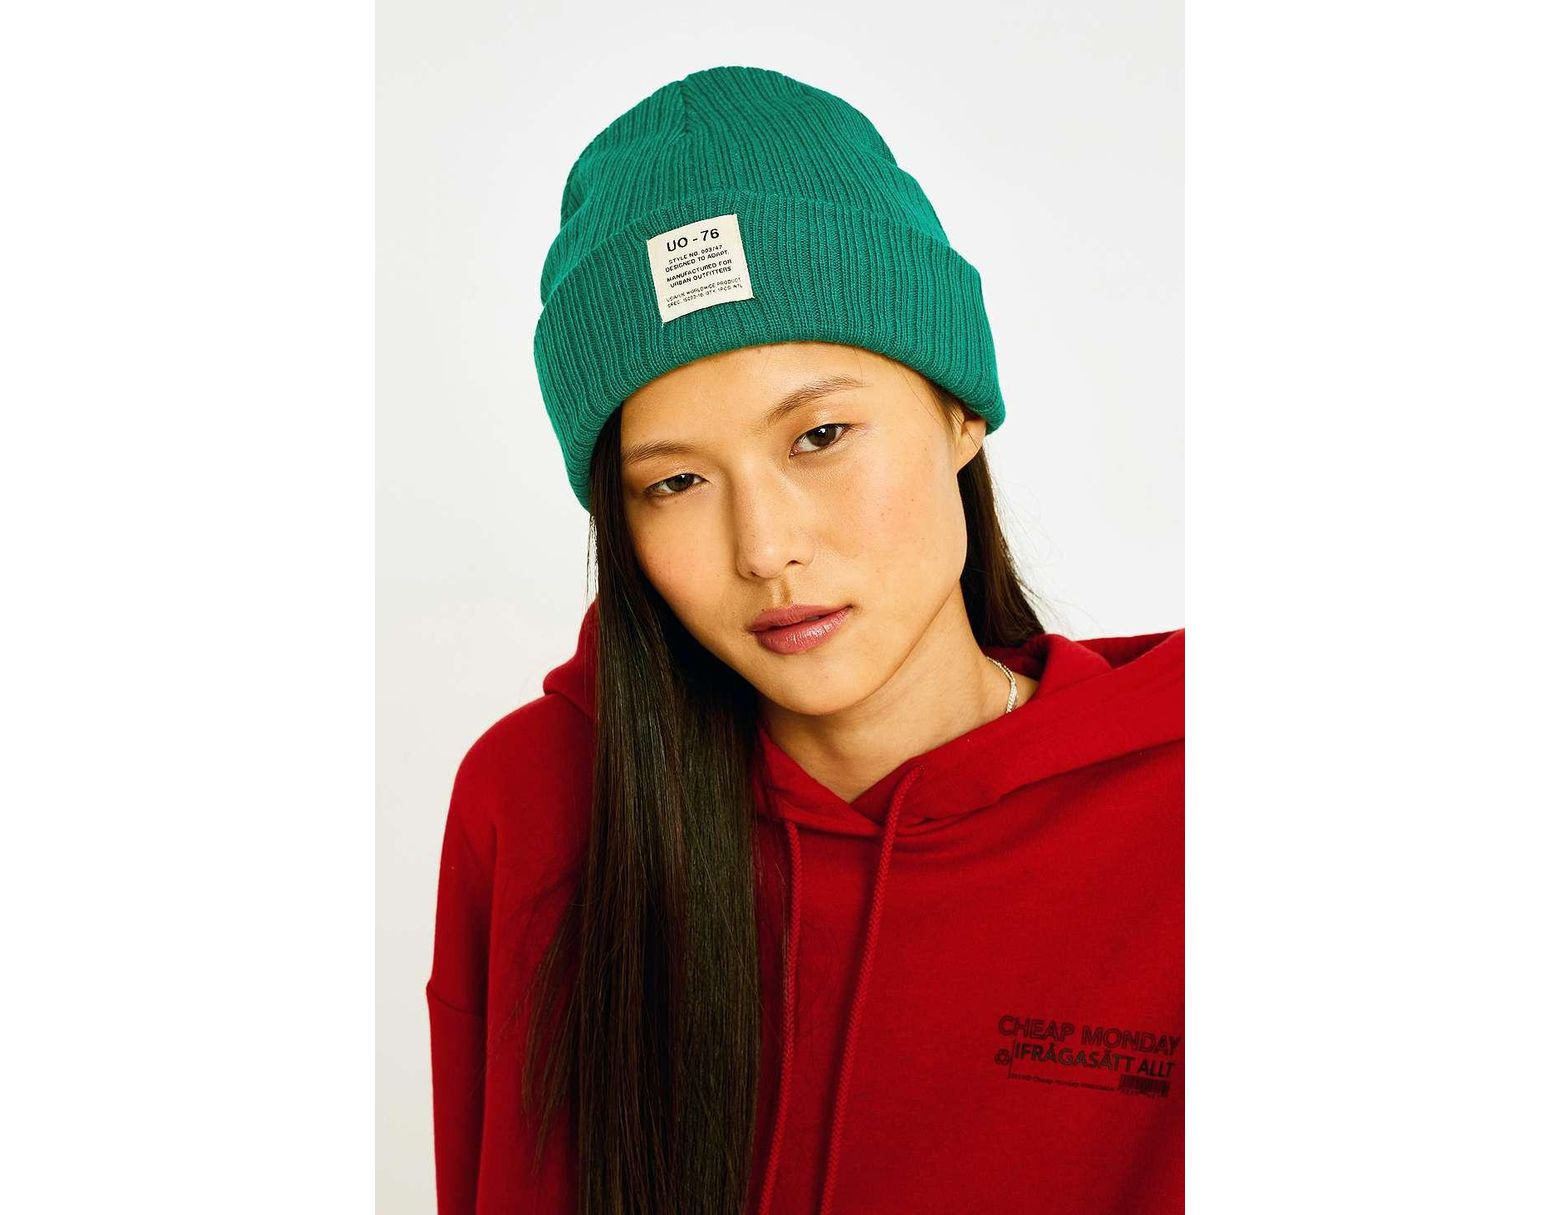 d24378d735fd9 Urban Outfitters Uo Utility Ribbed Beanie in Green - Lyst